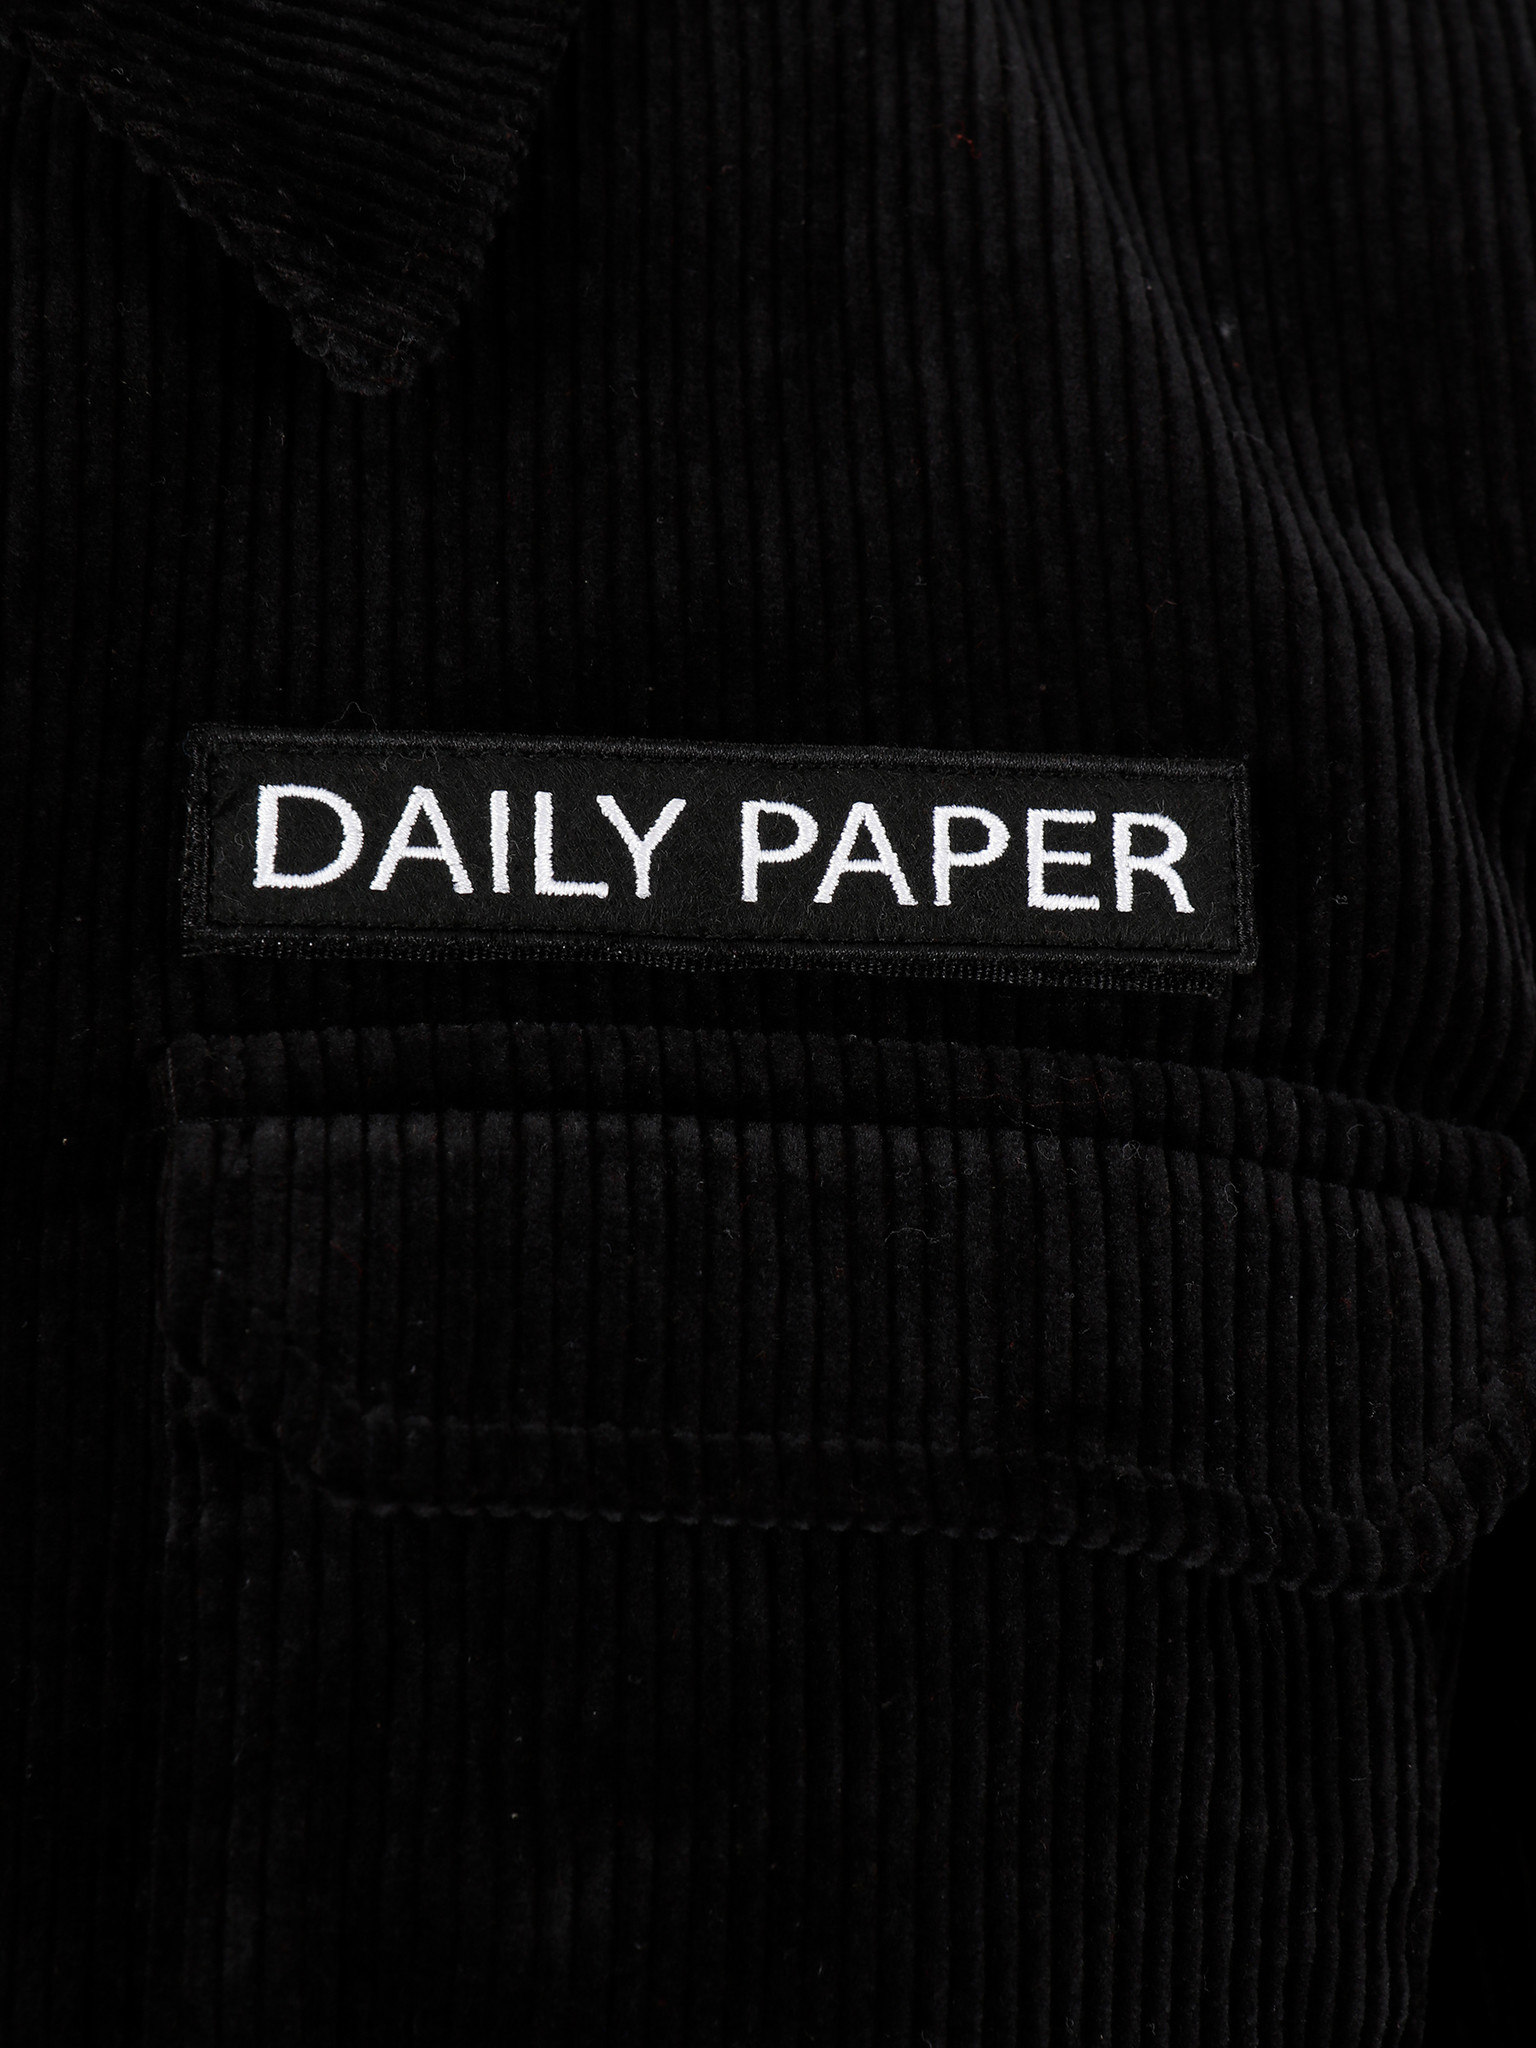 Daily Paper Daily Paper Cargo Jacket Corduroy Black 19H1OU01-04